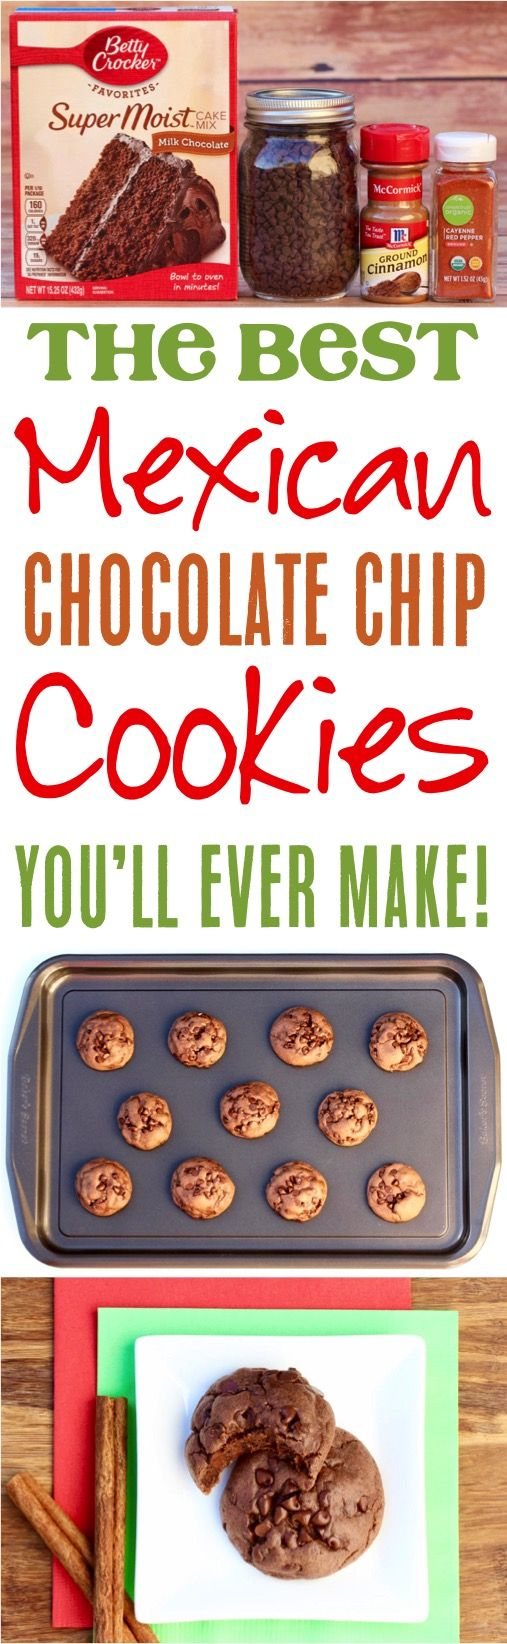 Mexican Chocolate Cookie Recipe!  Crazy delicious and one of the easiest chocolate cake mix cookies you'll ever make!